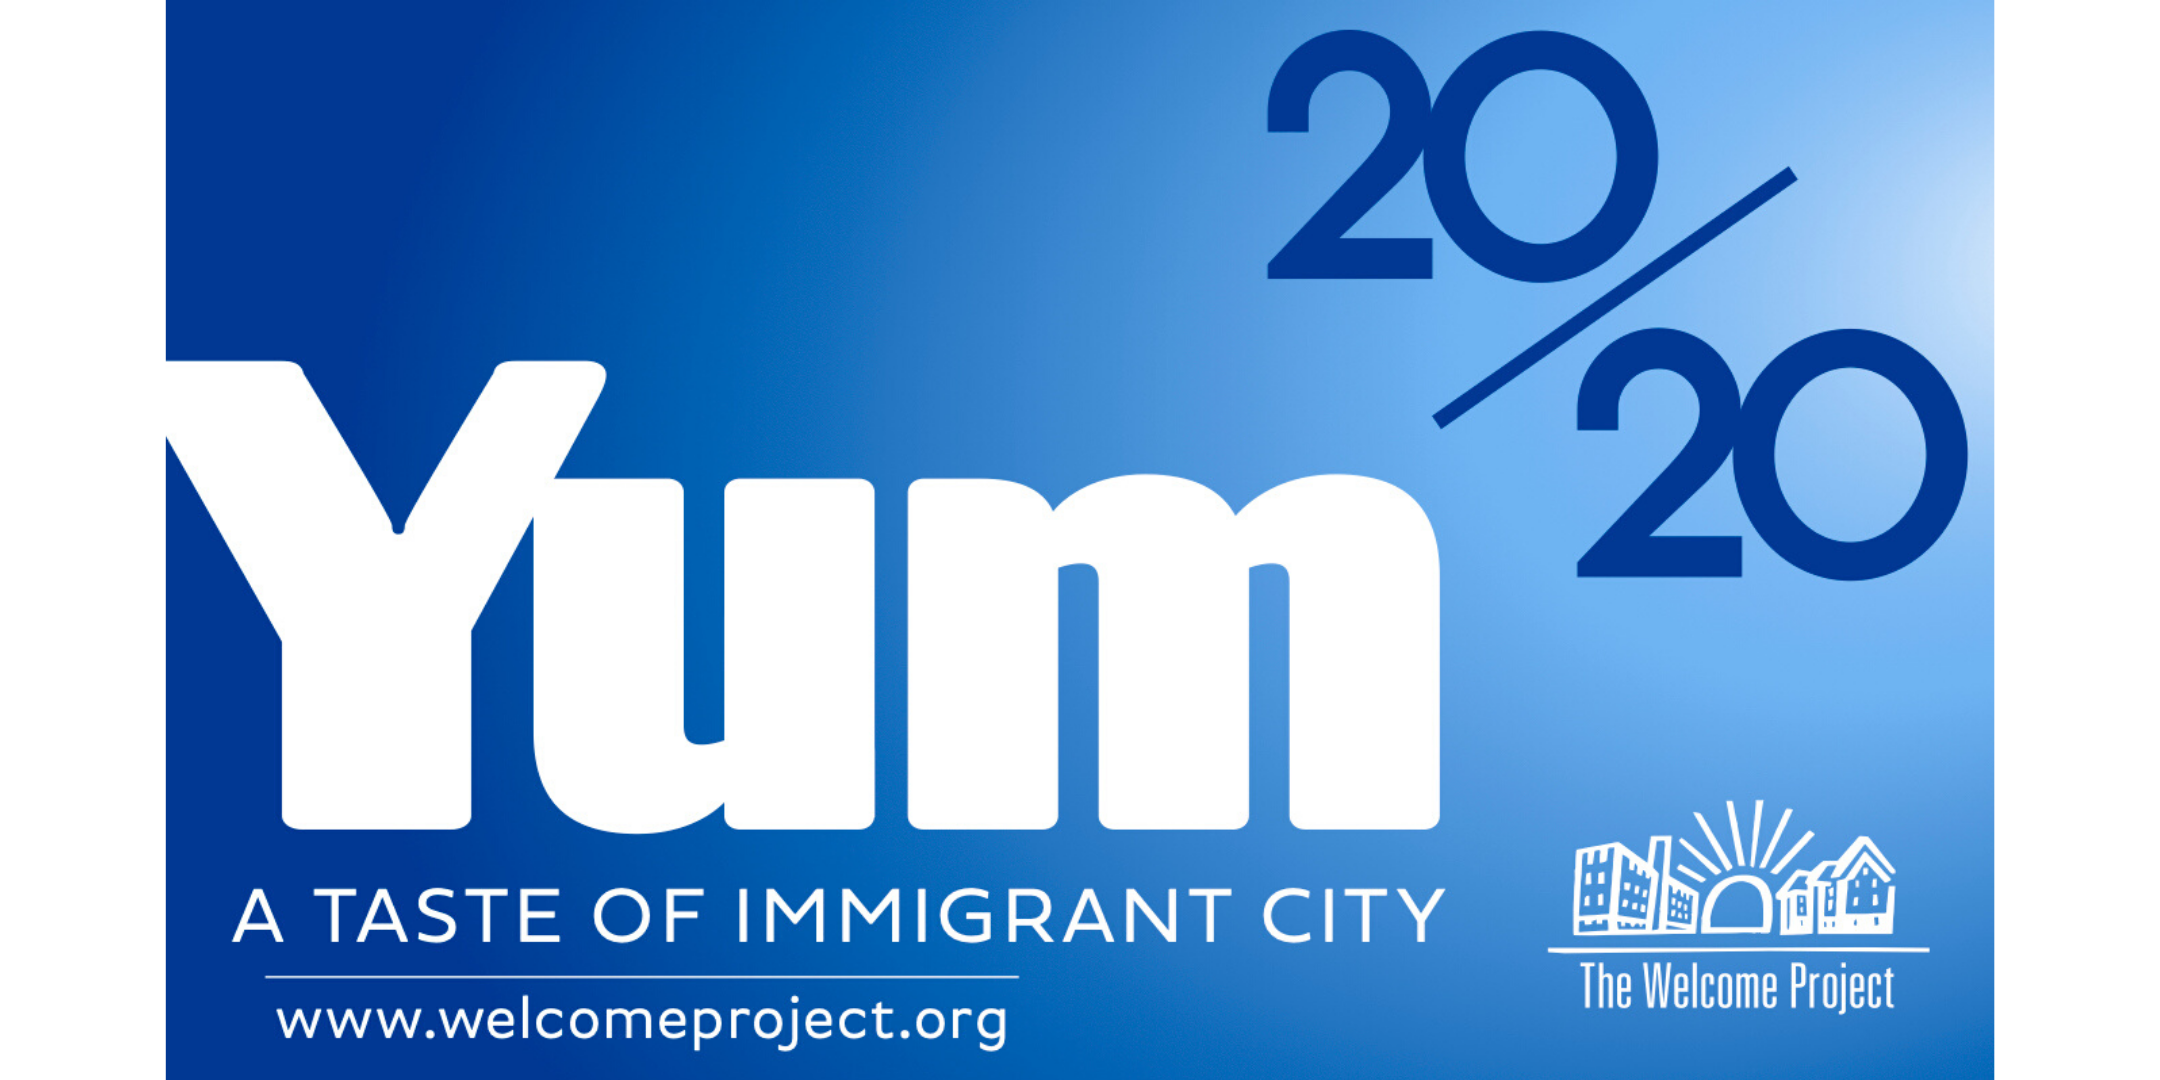 11th Annual YUM: A Taste of Immigrant City (VIRTUAL EVENT)